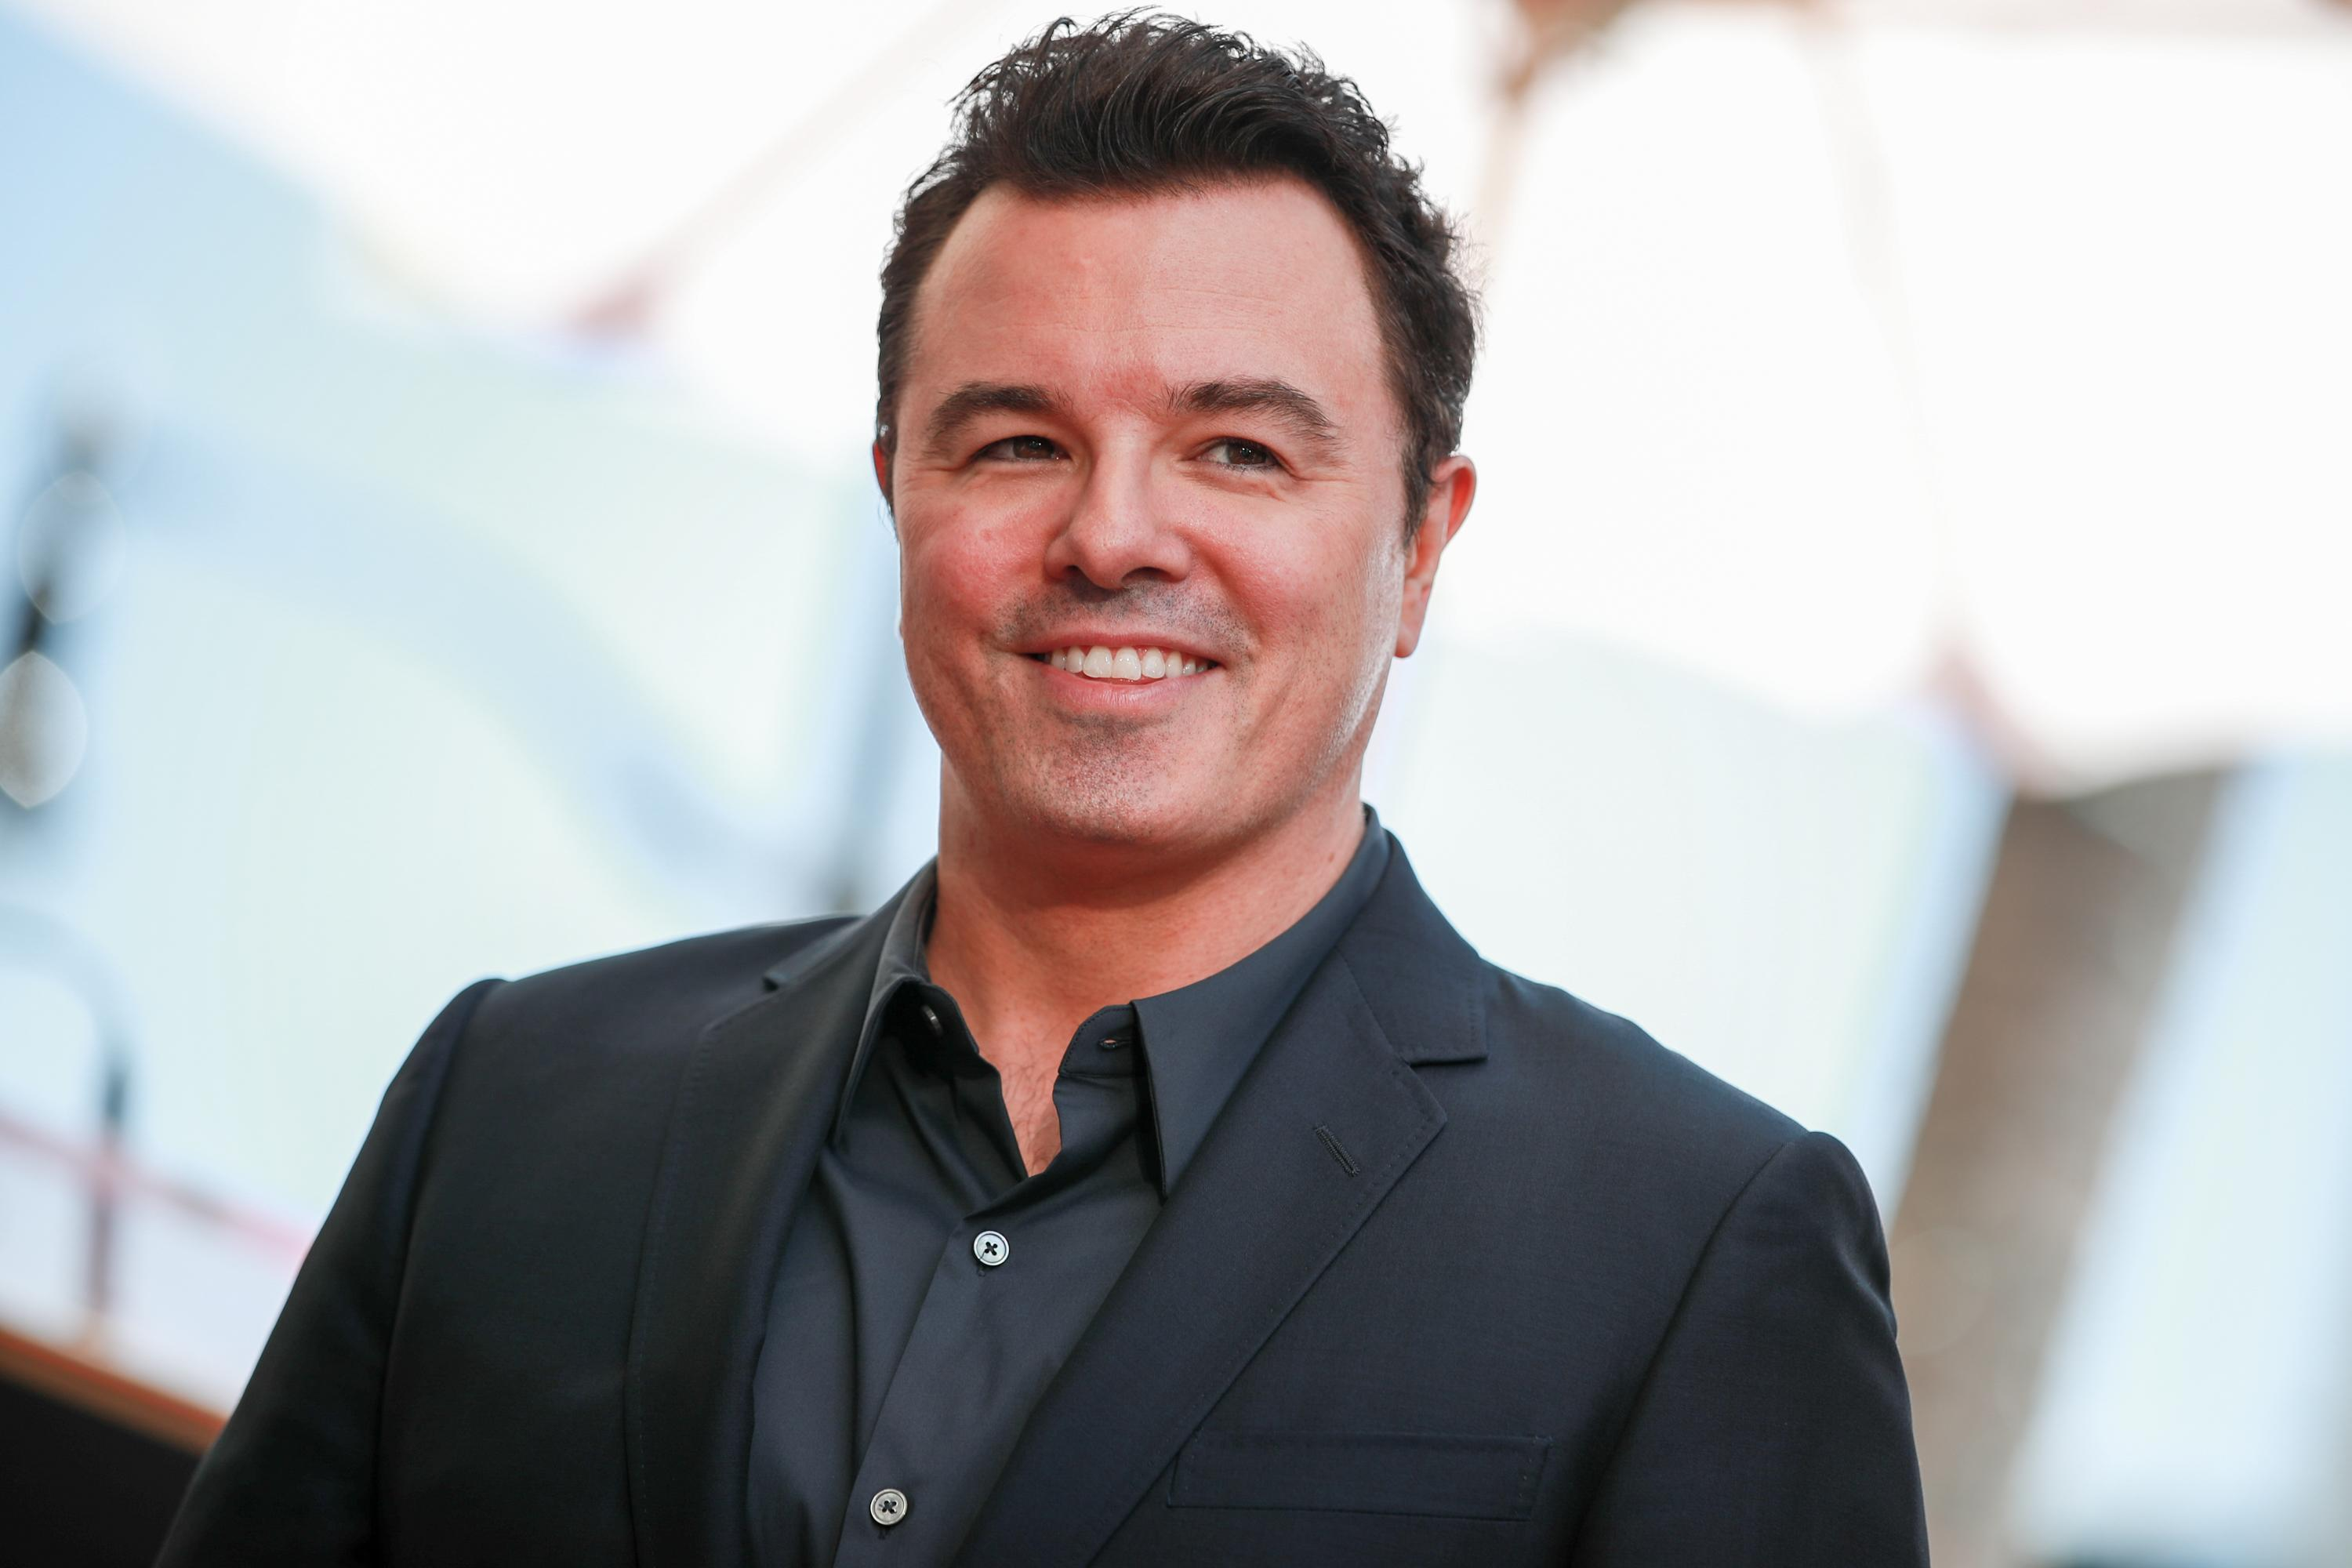 Seth MacFarlane calls out anti-vaxxer parents: 'You're endangering their health and the health of the public'